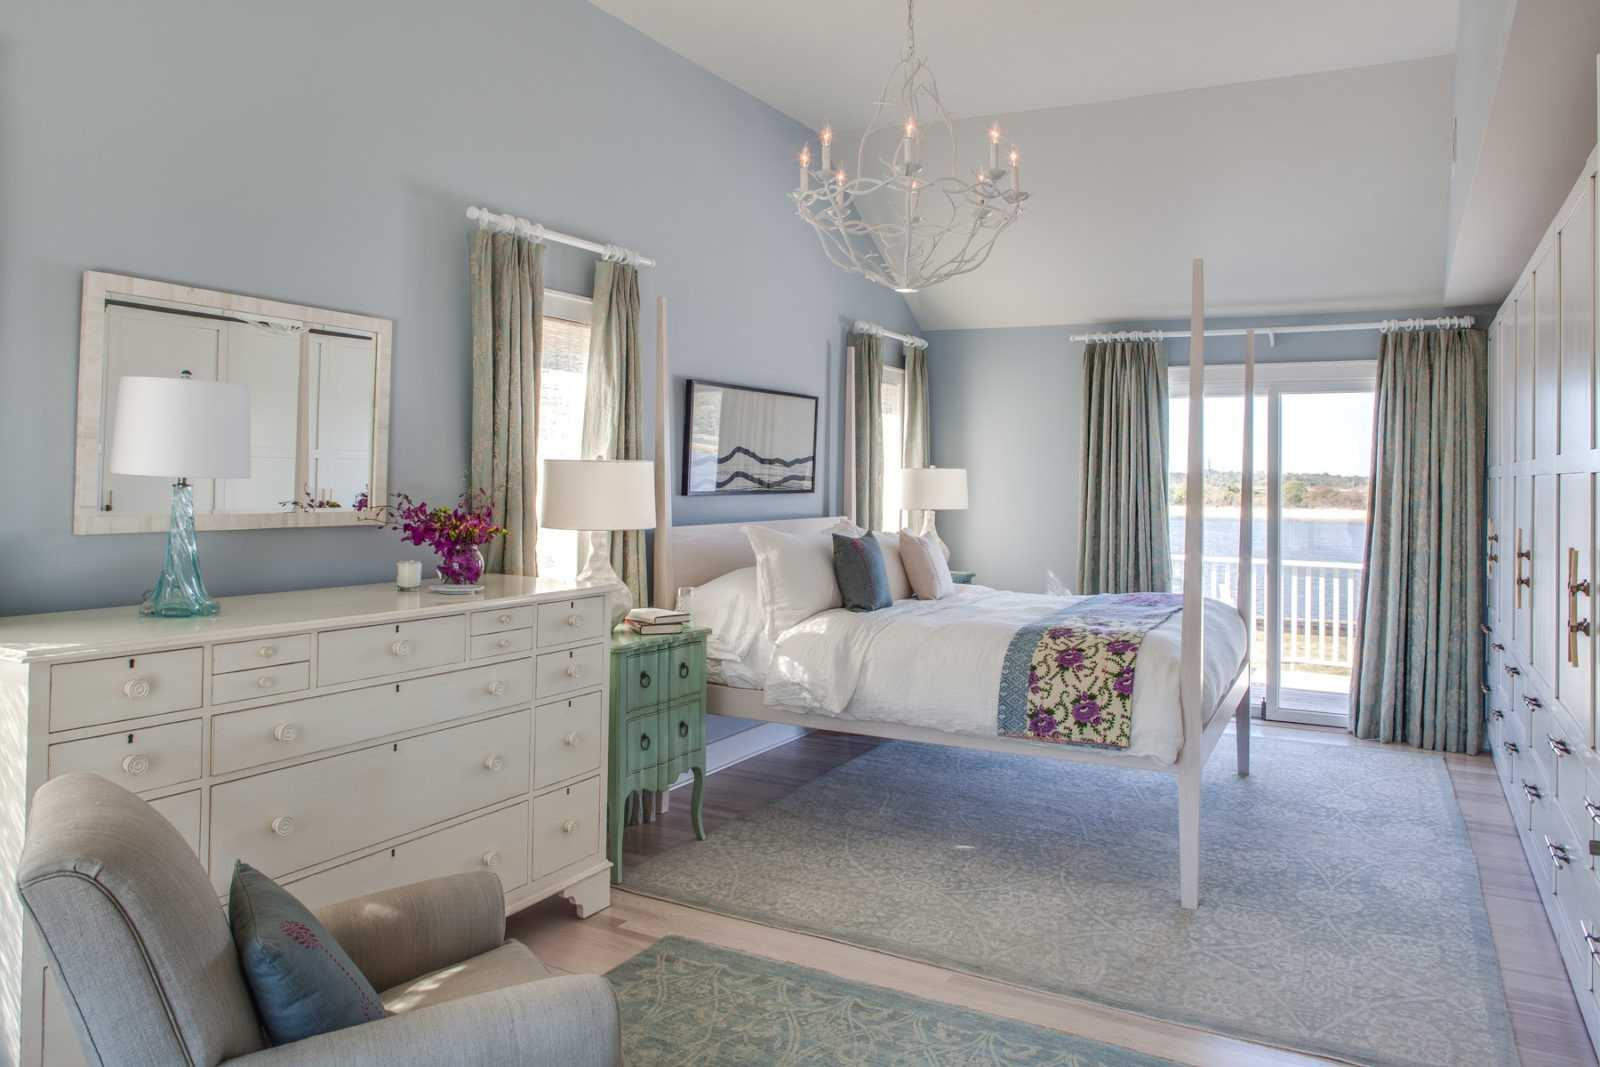 Hamptons Interior Design And Renovation